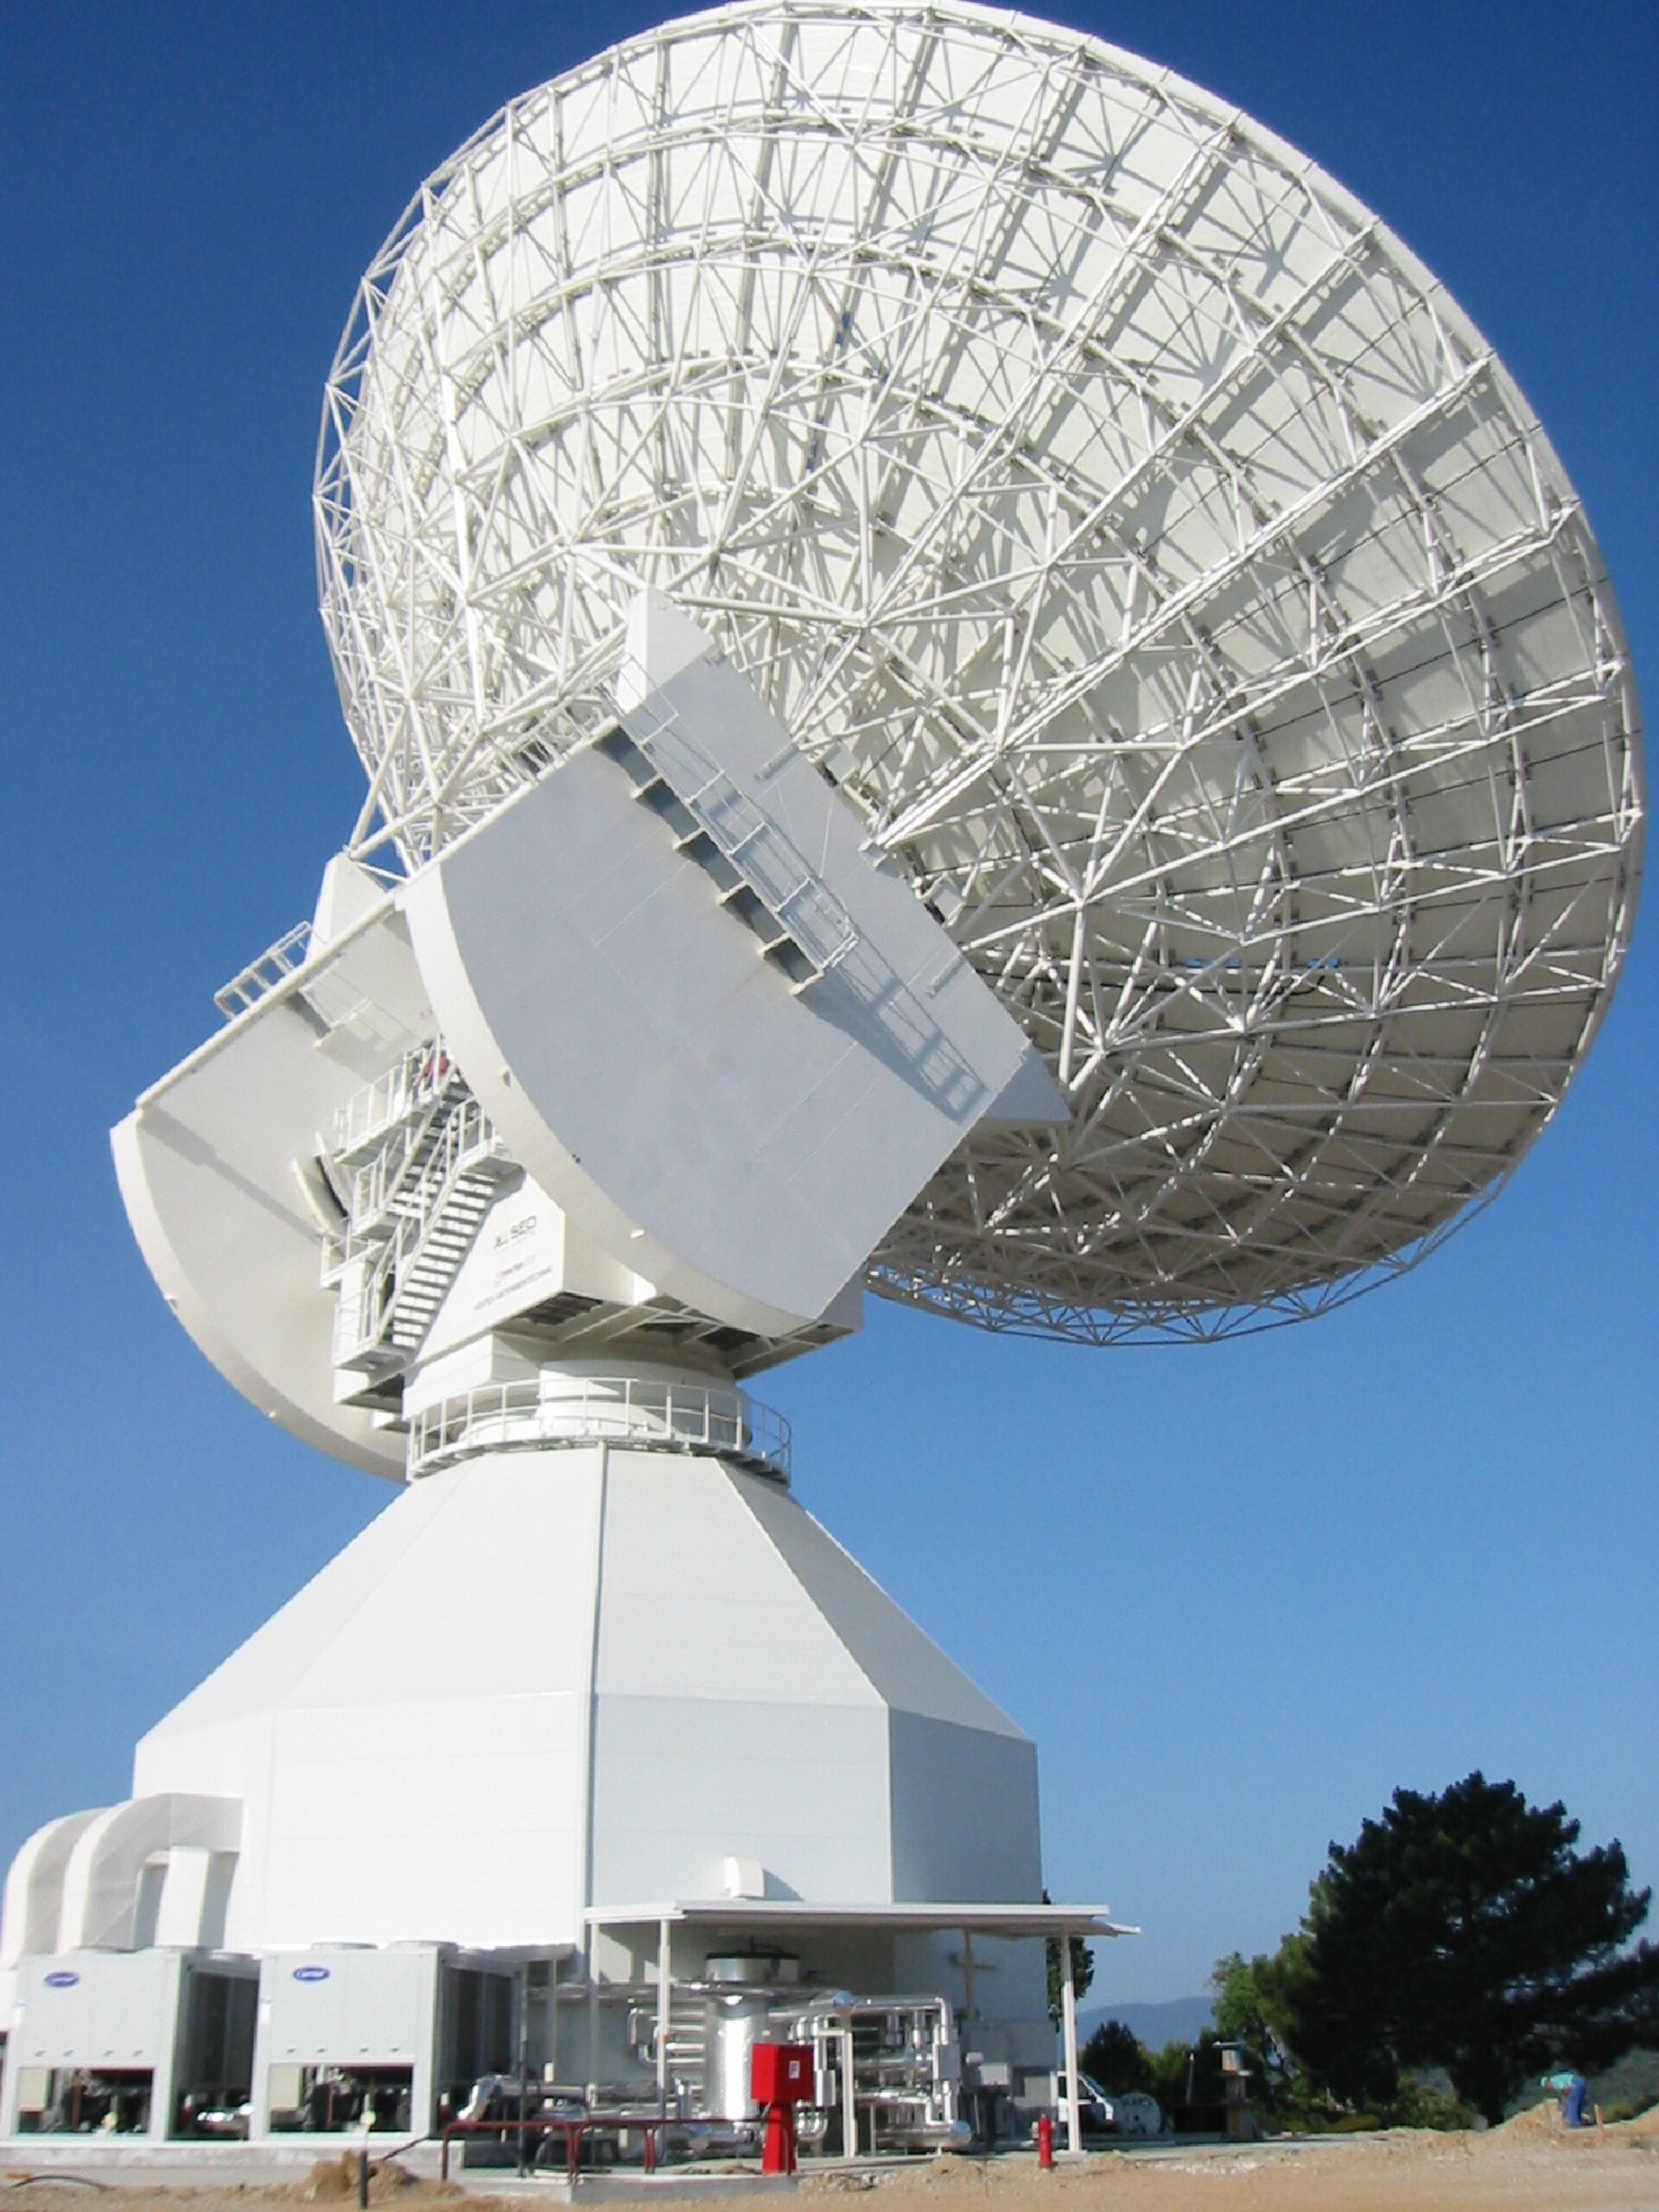 ESA's newest deep space antenna